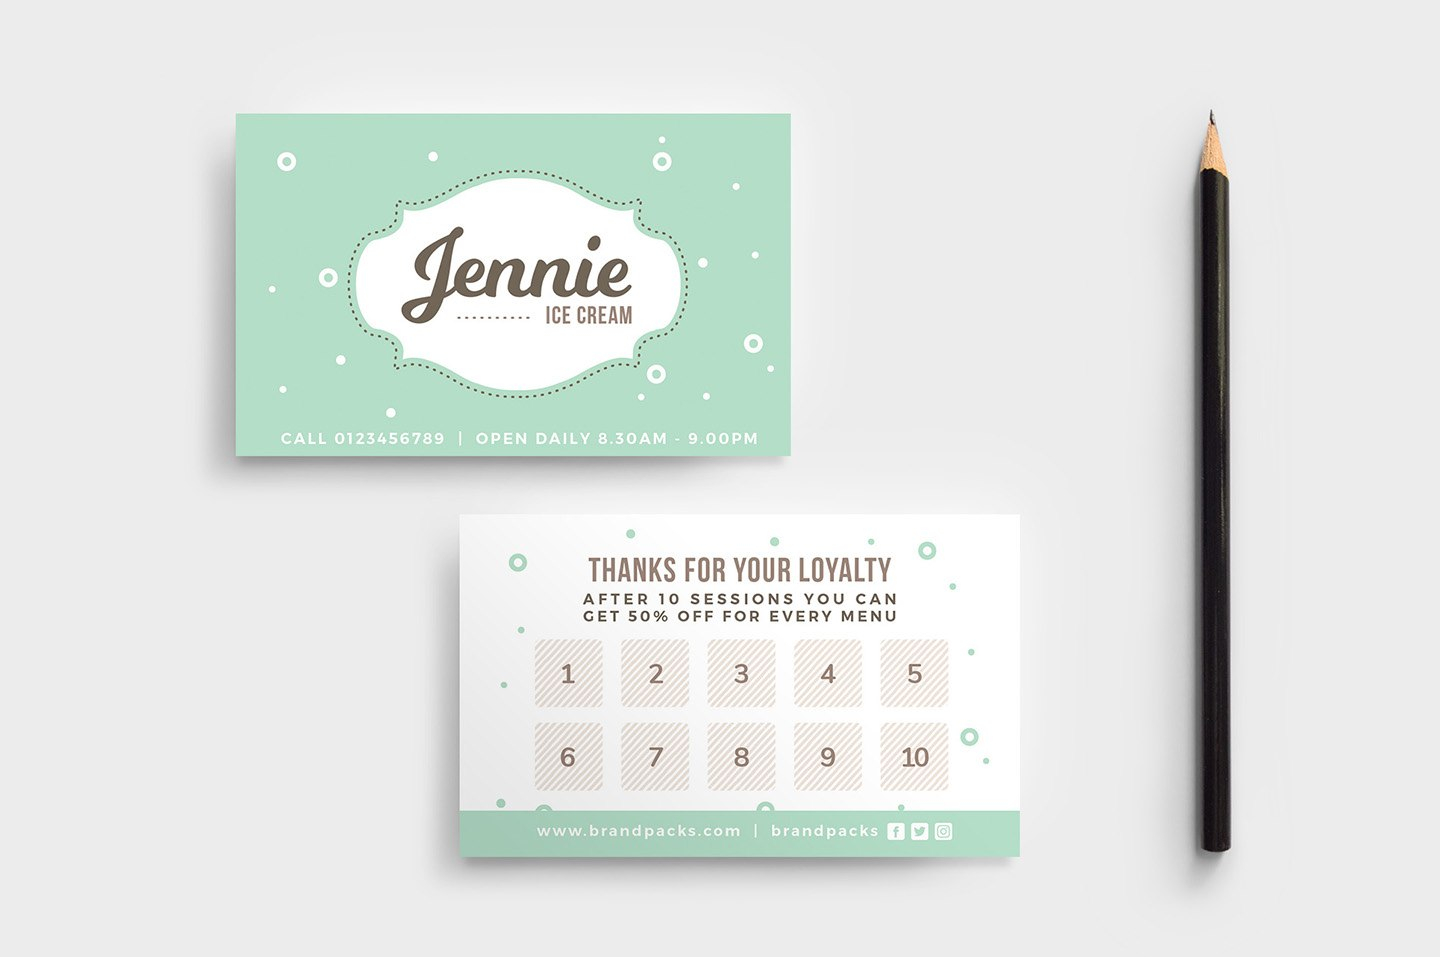 Free Loyalty Card Templates  Psd Ai  Vector  Brandpacks Throughout Template For Membership Cards